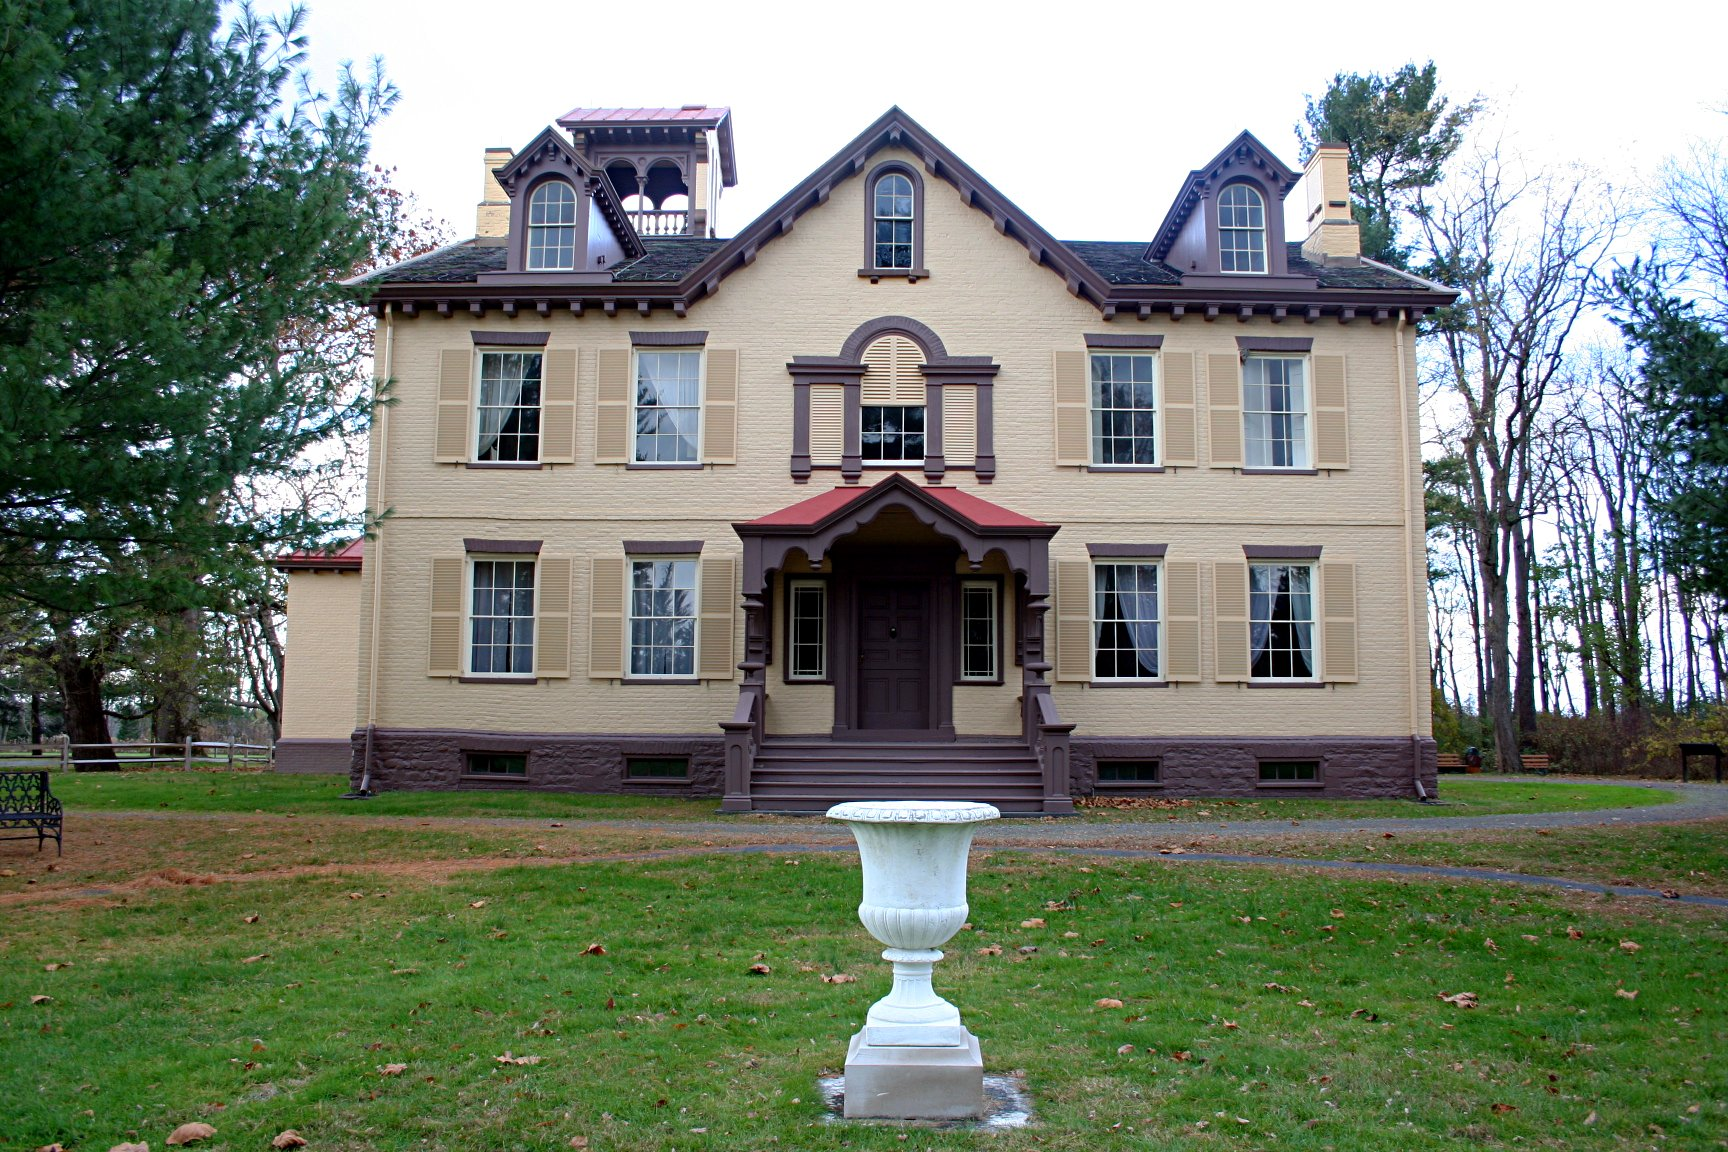 Martin Van Buren's former home and farm are known as Lindenwald.